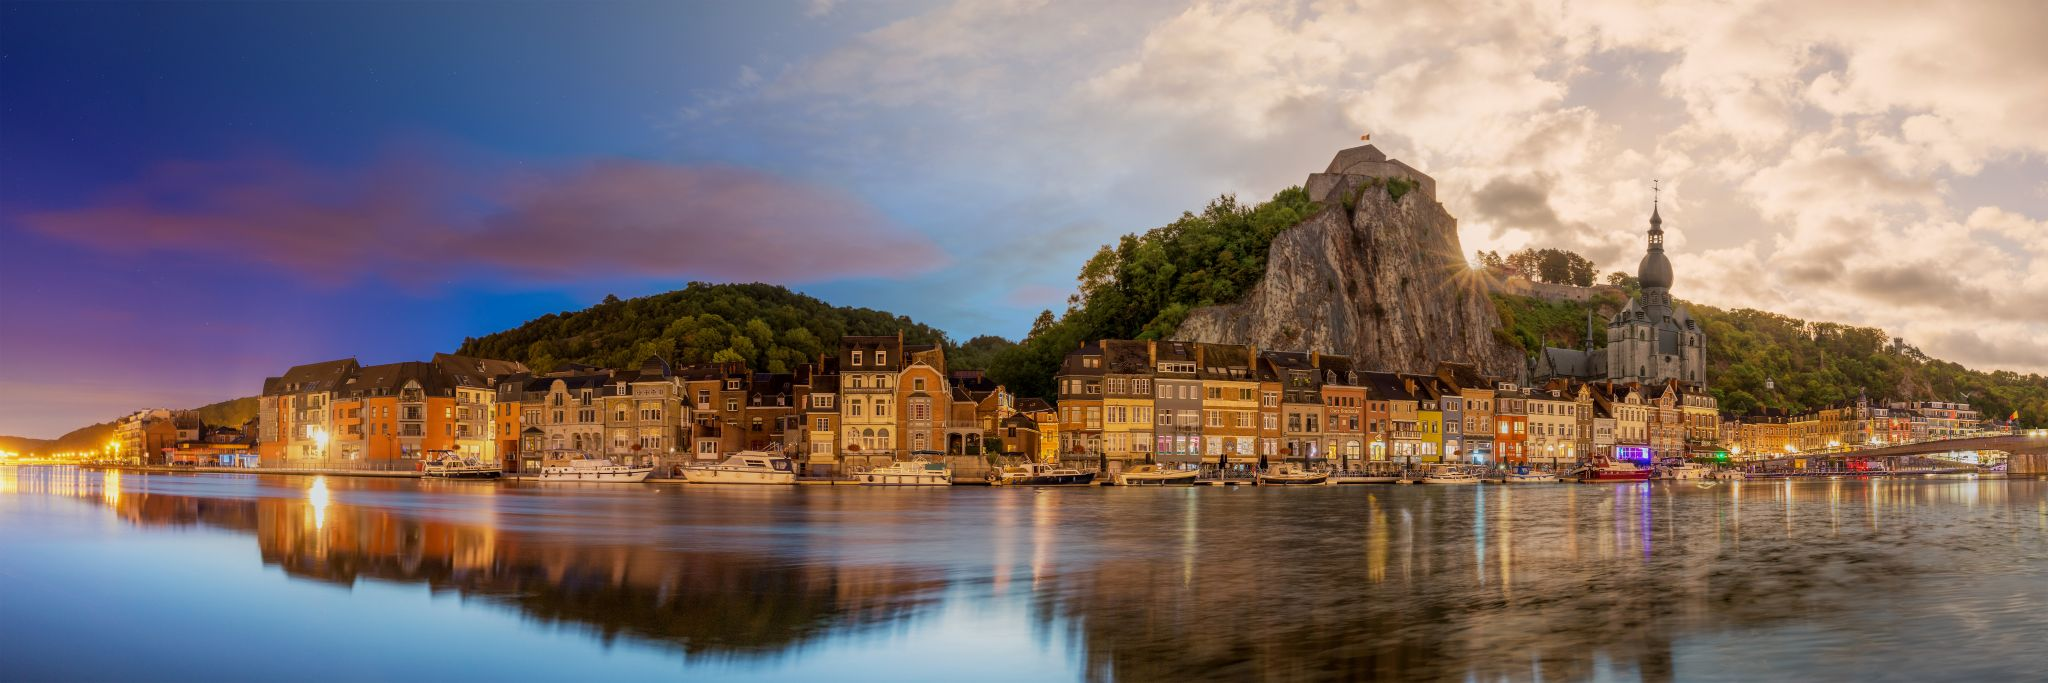 Dinant cathedral time blending panorama, Belgium